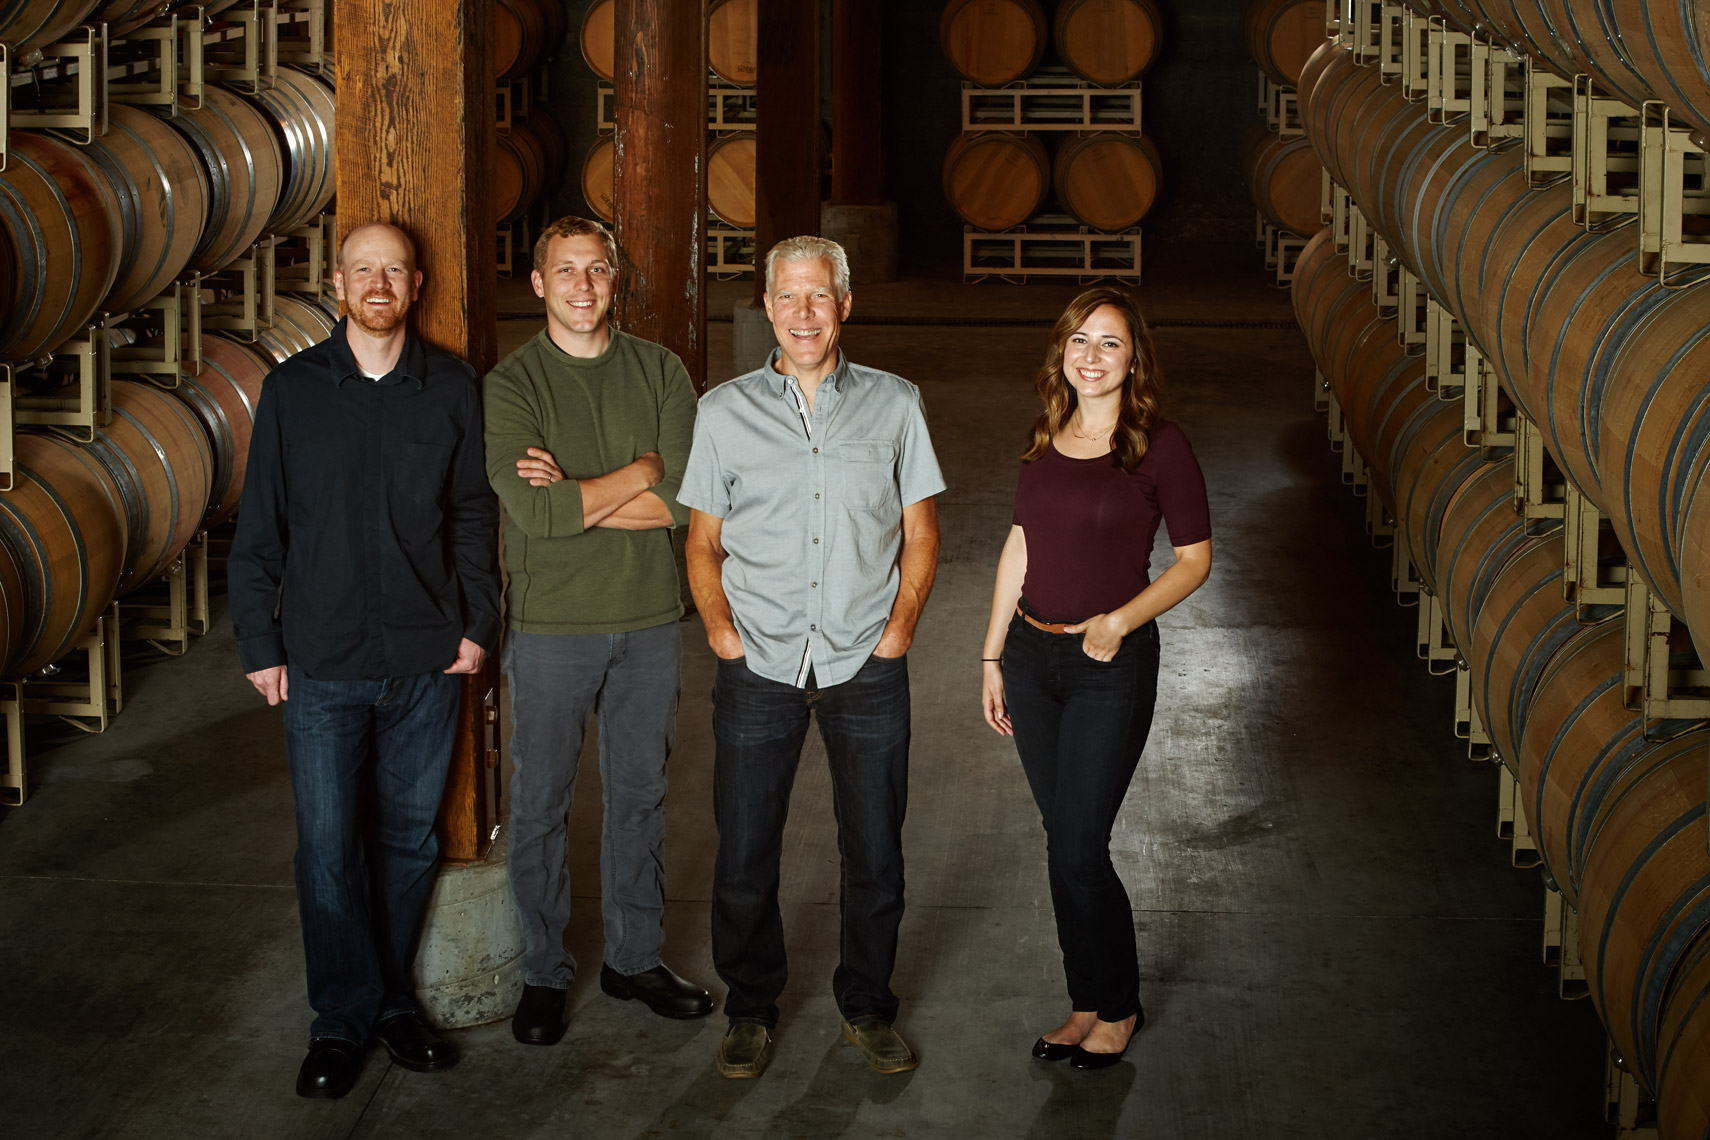 AlanCampbellPhotography, Wine-Making-Team- in cellar